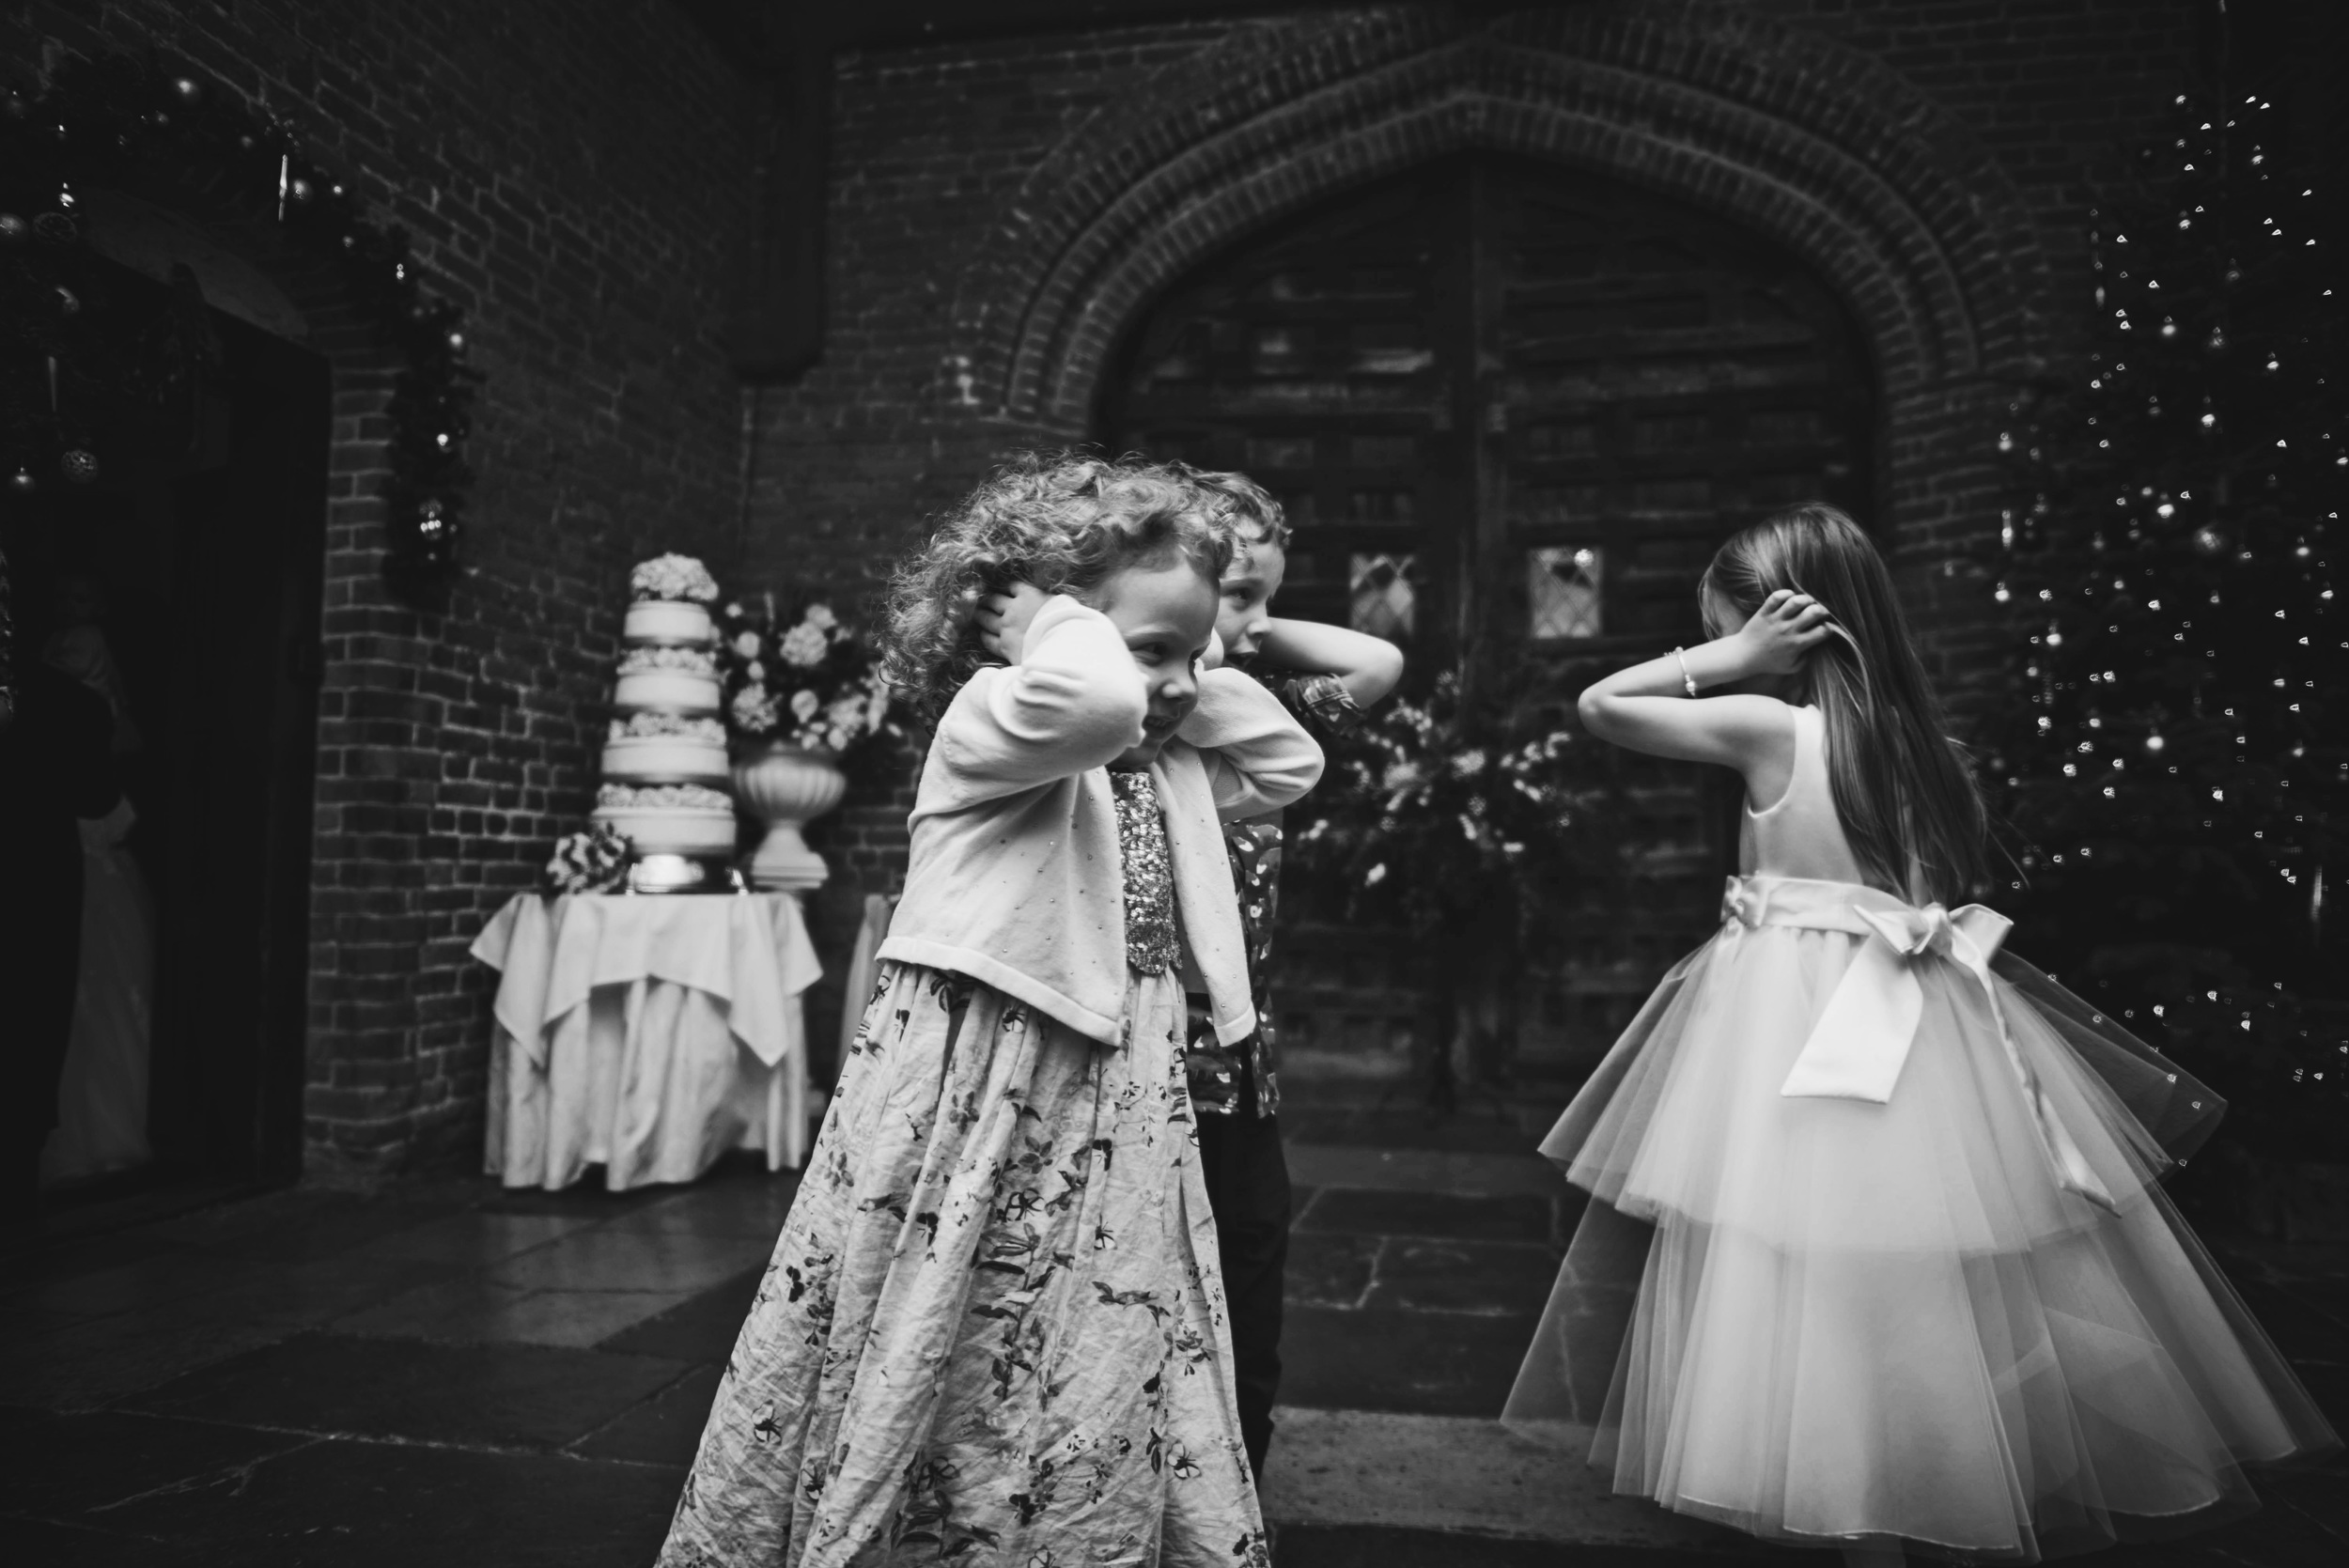 Little girls cover ears for wedding singer Christmas Leez Priory Essex UK Documentary Wedding Photographer